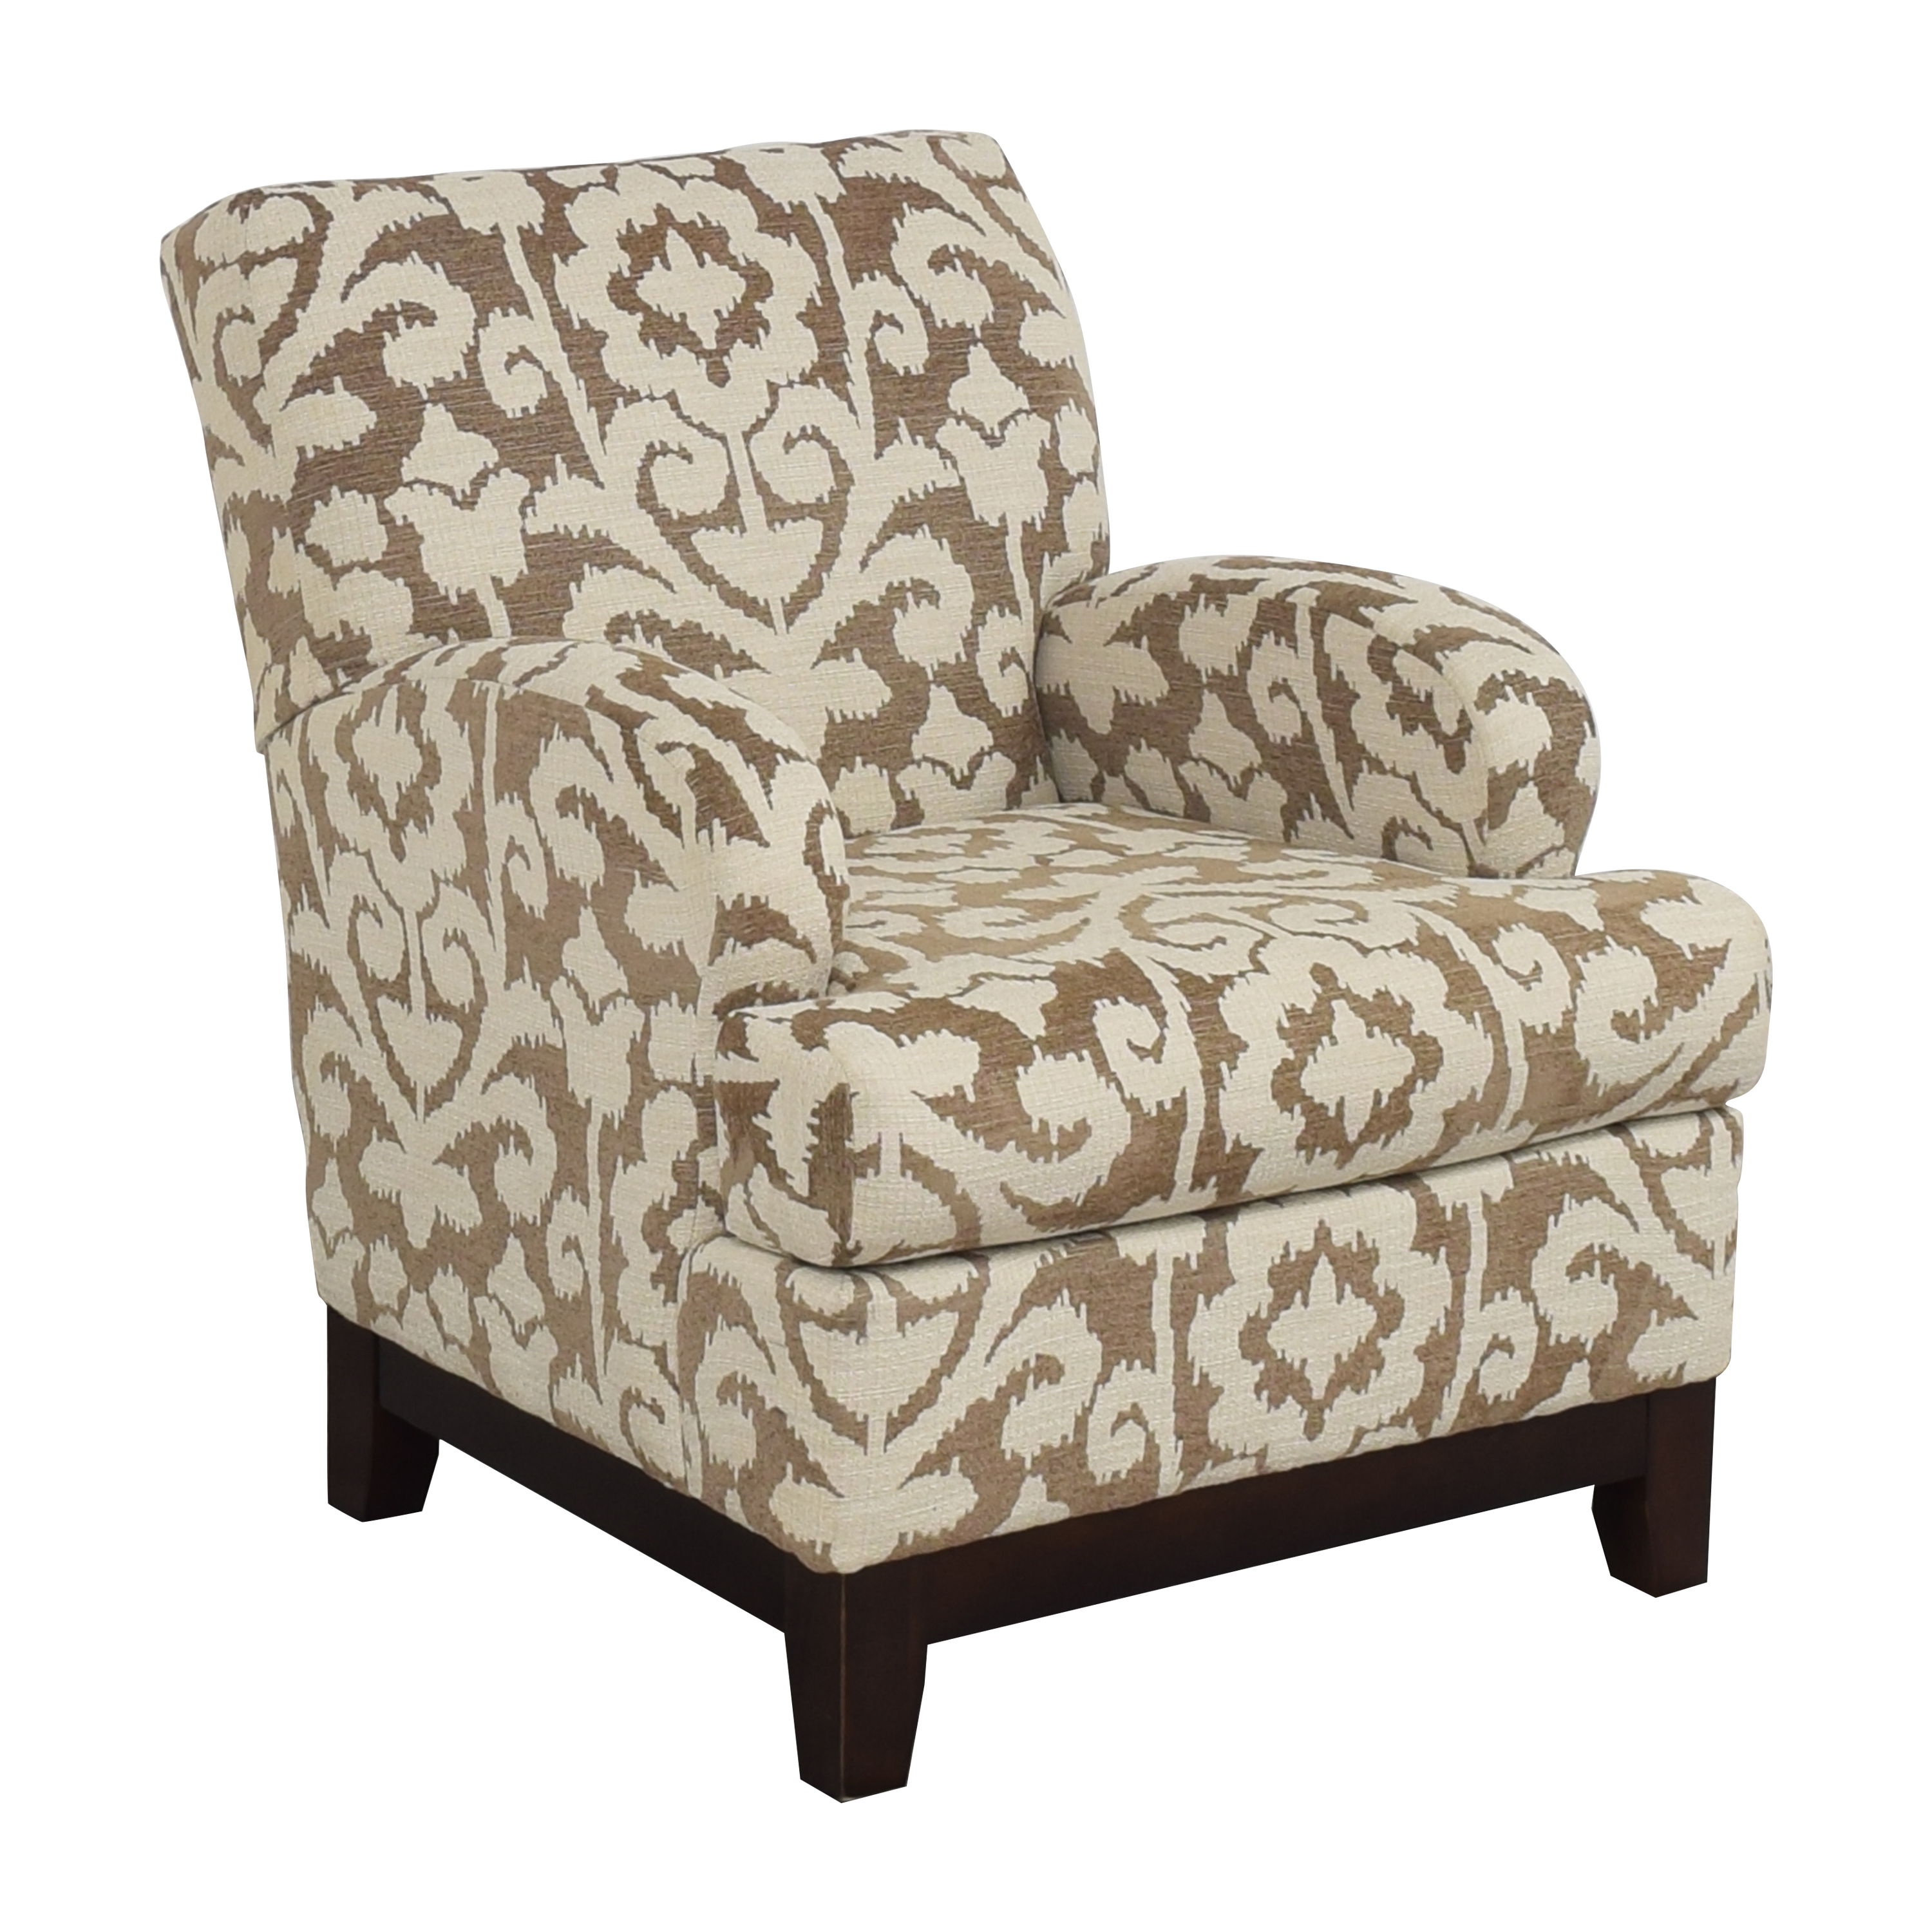 Upholstered Accent Chair coupon